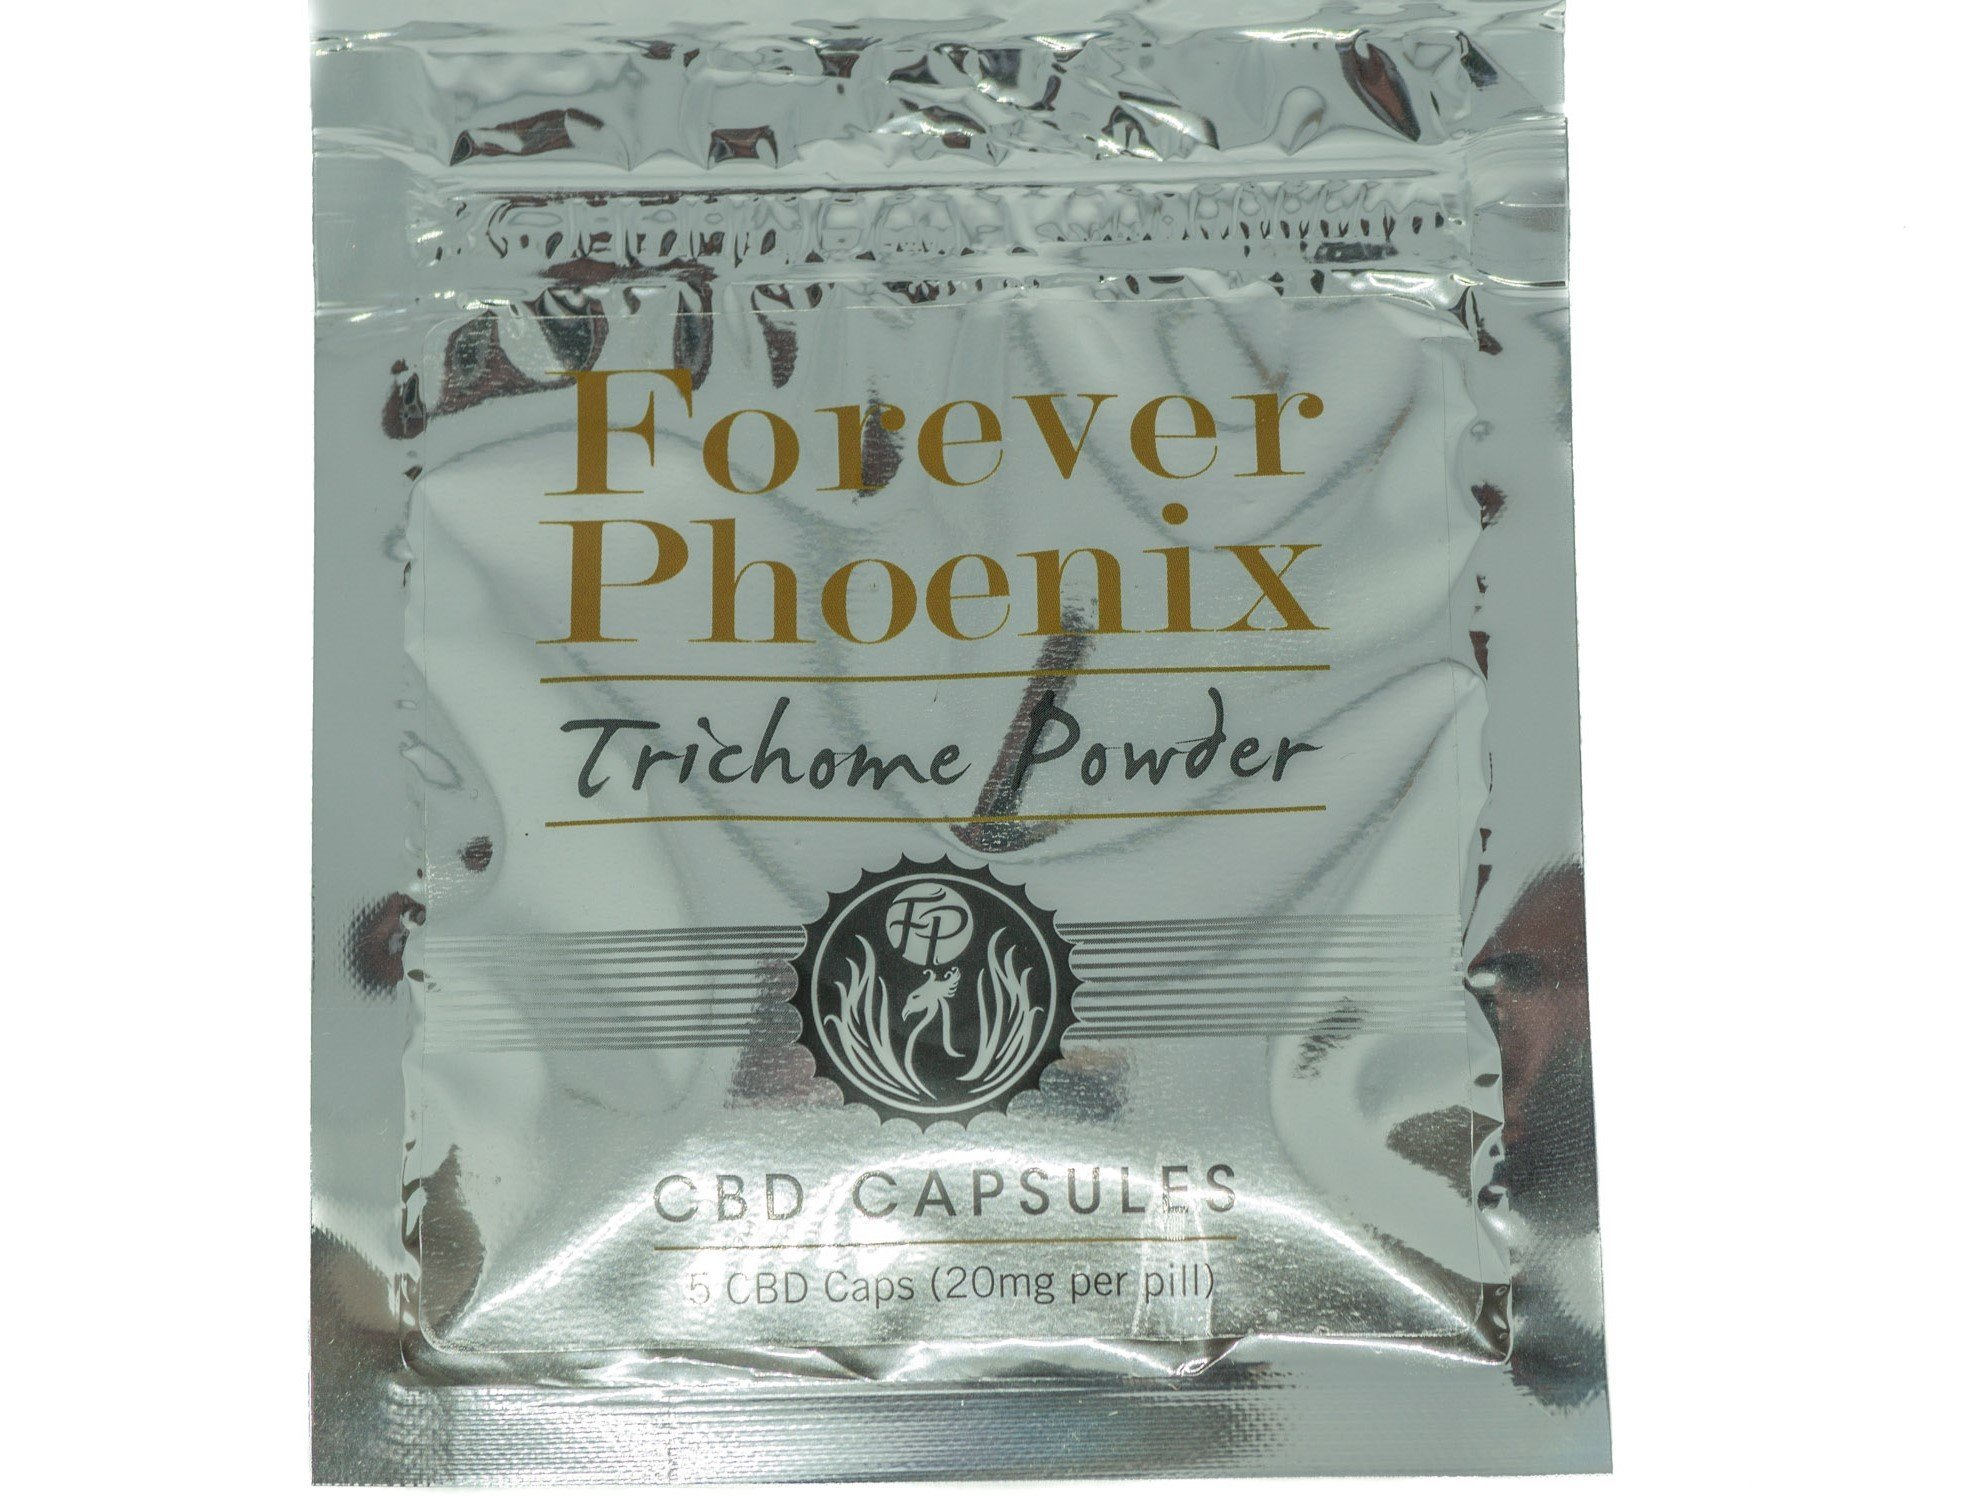 CBD 20mg (5 caps) Trichome Powder Capsules by Forever Phoenix 01154